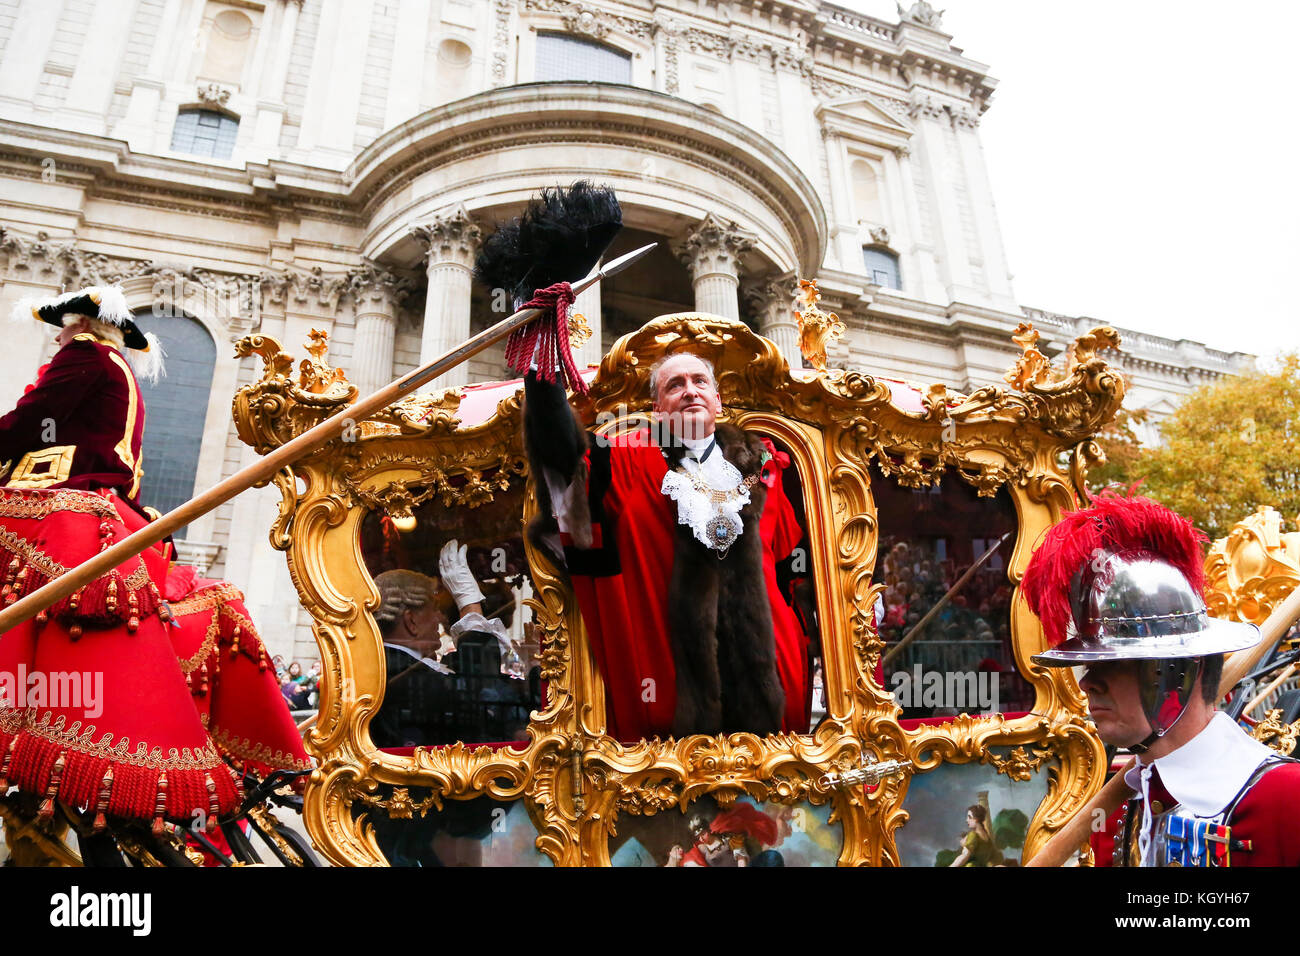 St Paul's Cathedral. London. UK. 11 Nov 2017 - Lord Mayor, Charles Bowman waves at the public after been blessed. - Stock Image